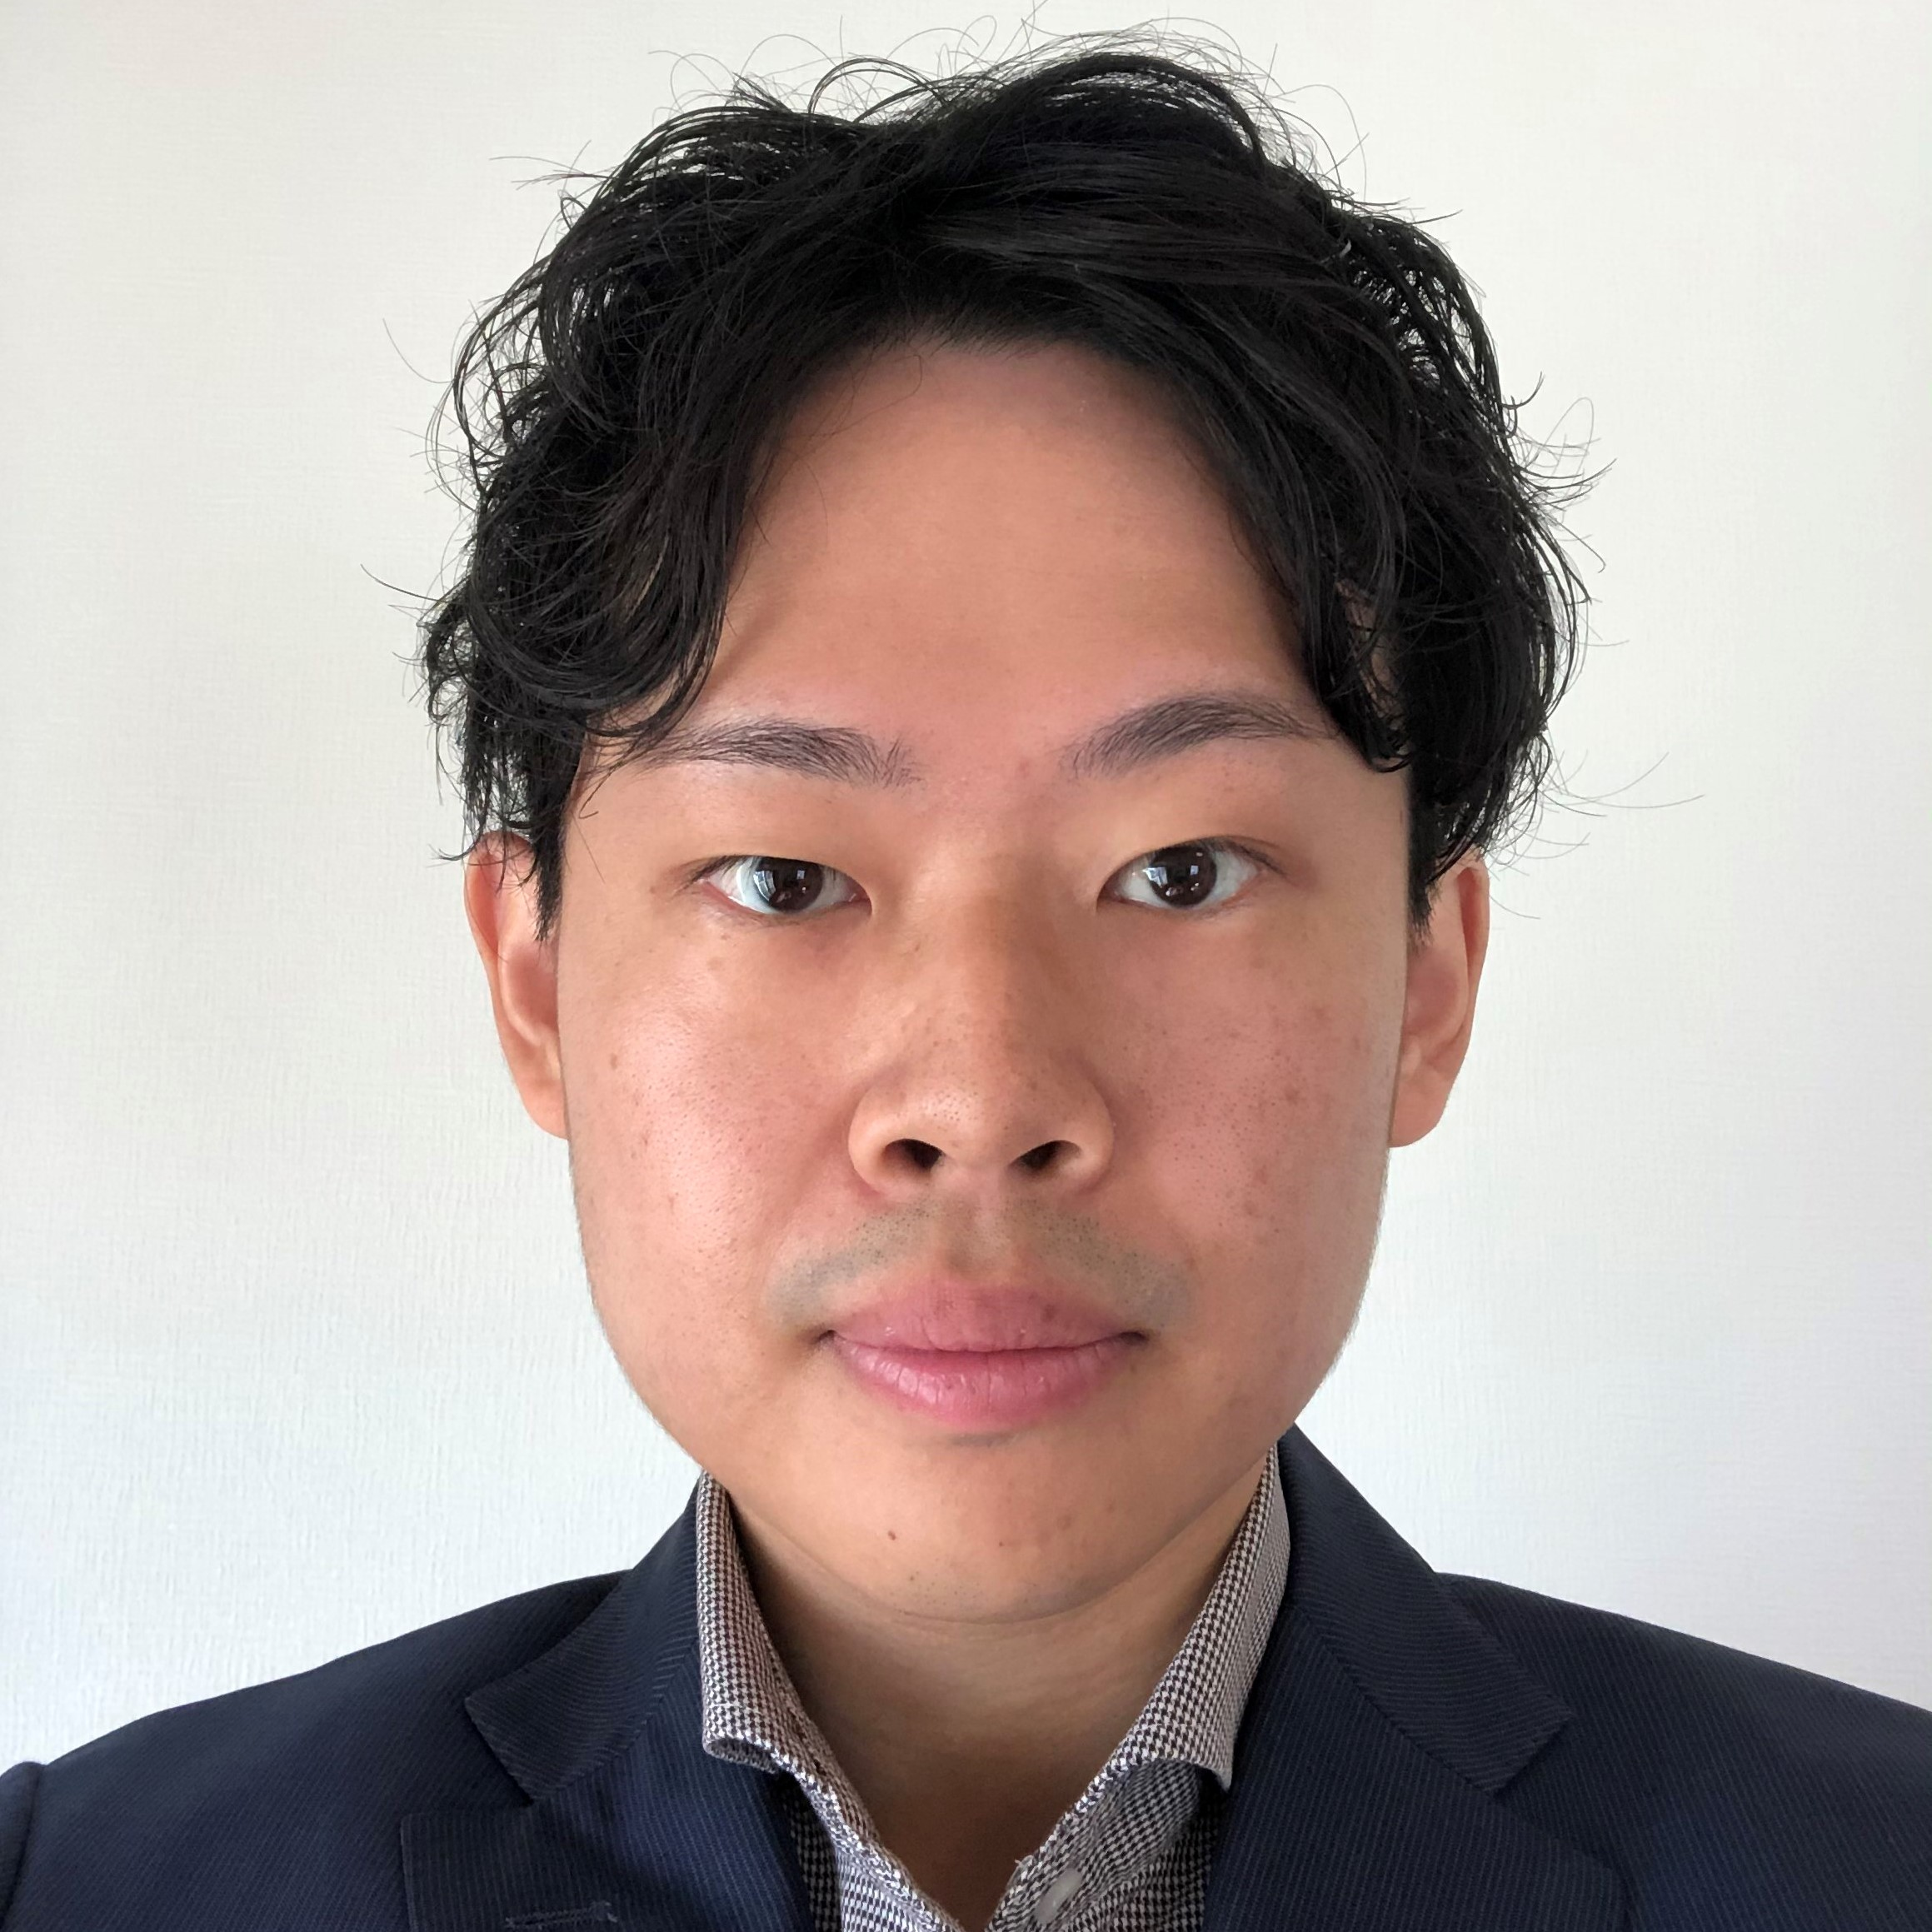 Account Executive - Agency Relations 岩手 岳人